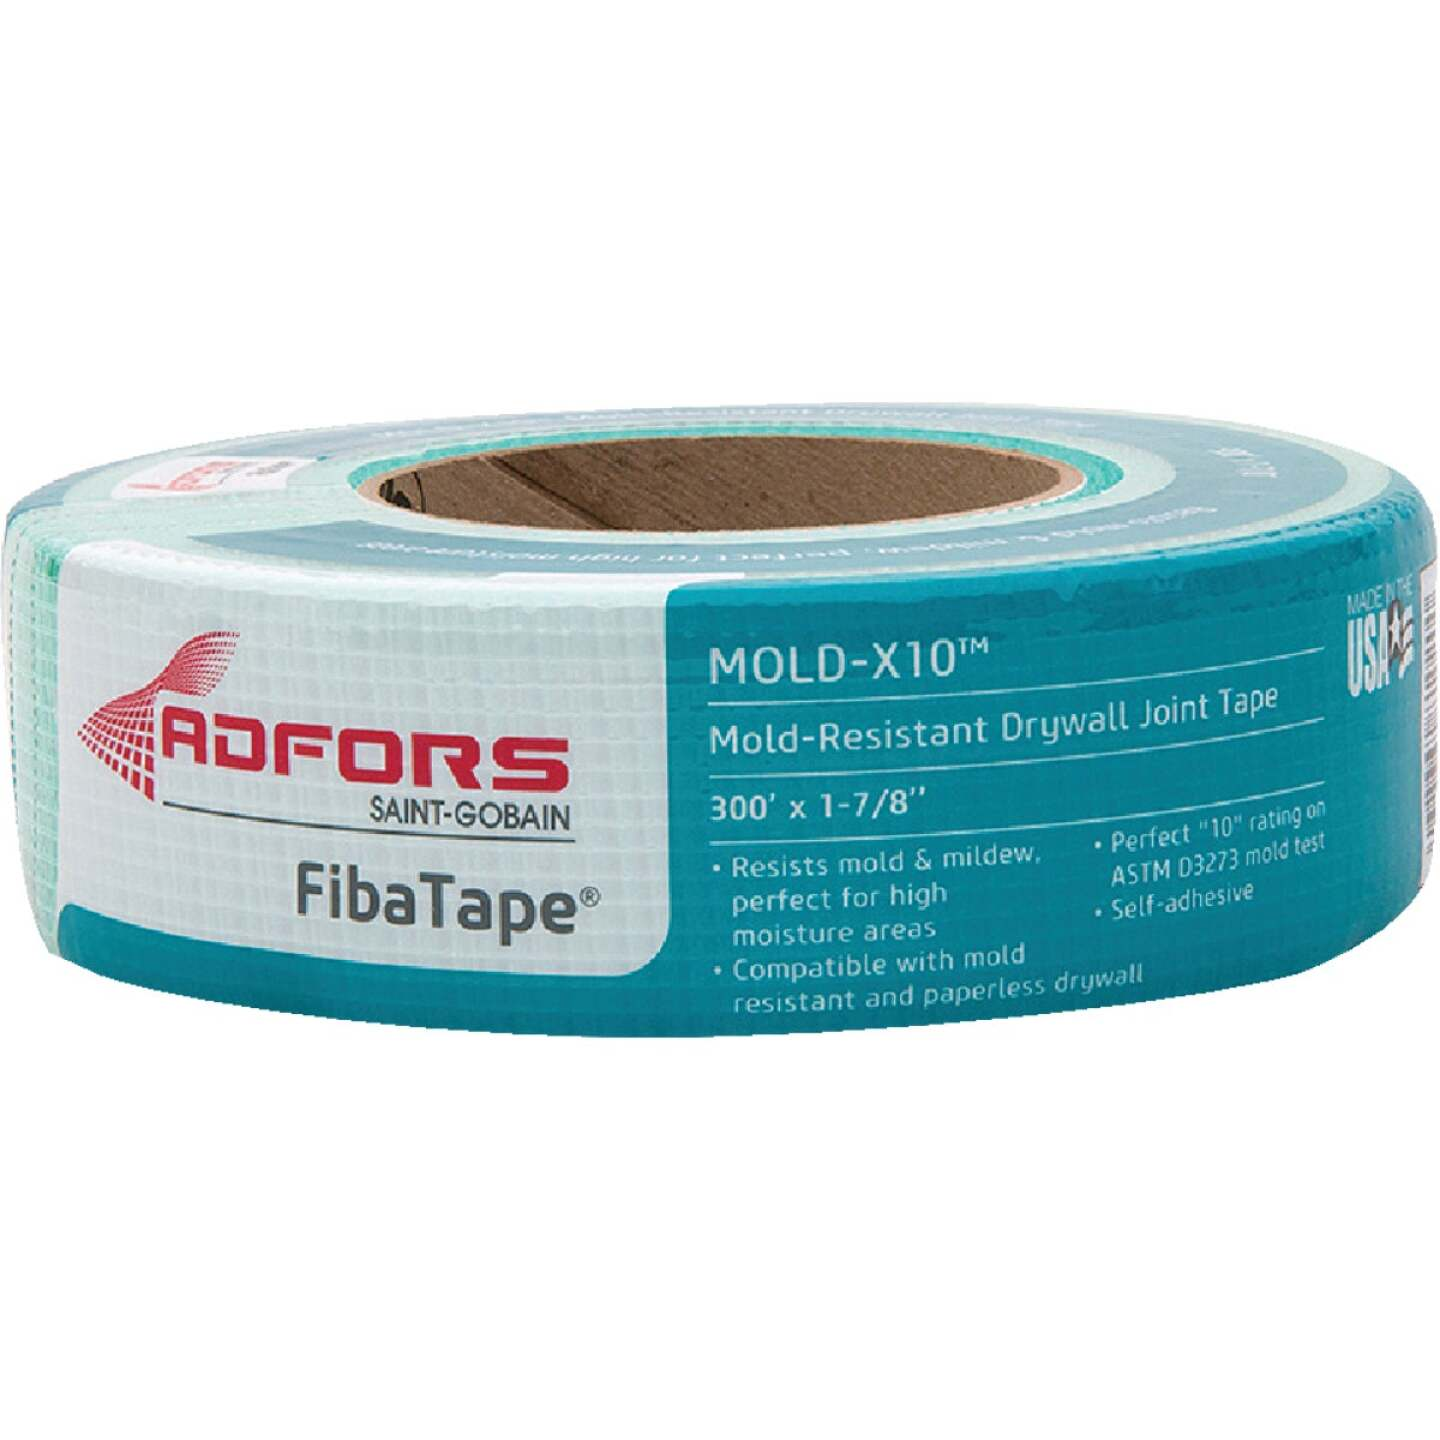 FibaTape Mold-X10 1-7/8 In. X 300 Ft. Mold & Mildew-Resistant Joint Drywall Tape Image 1